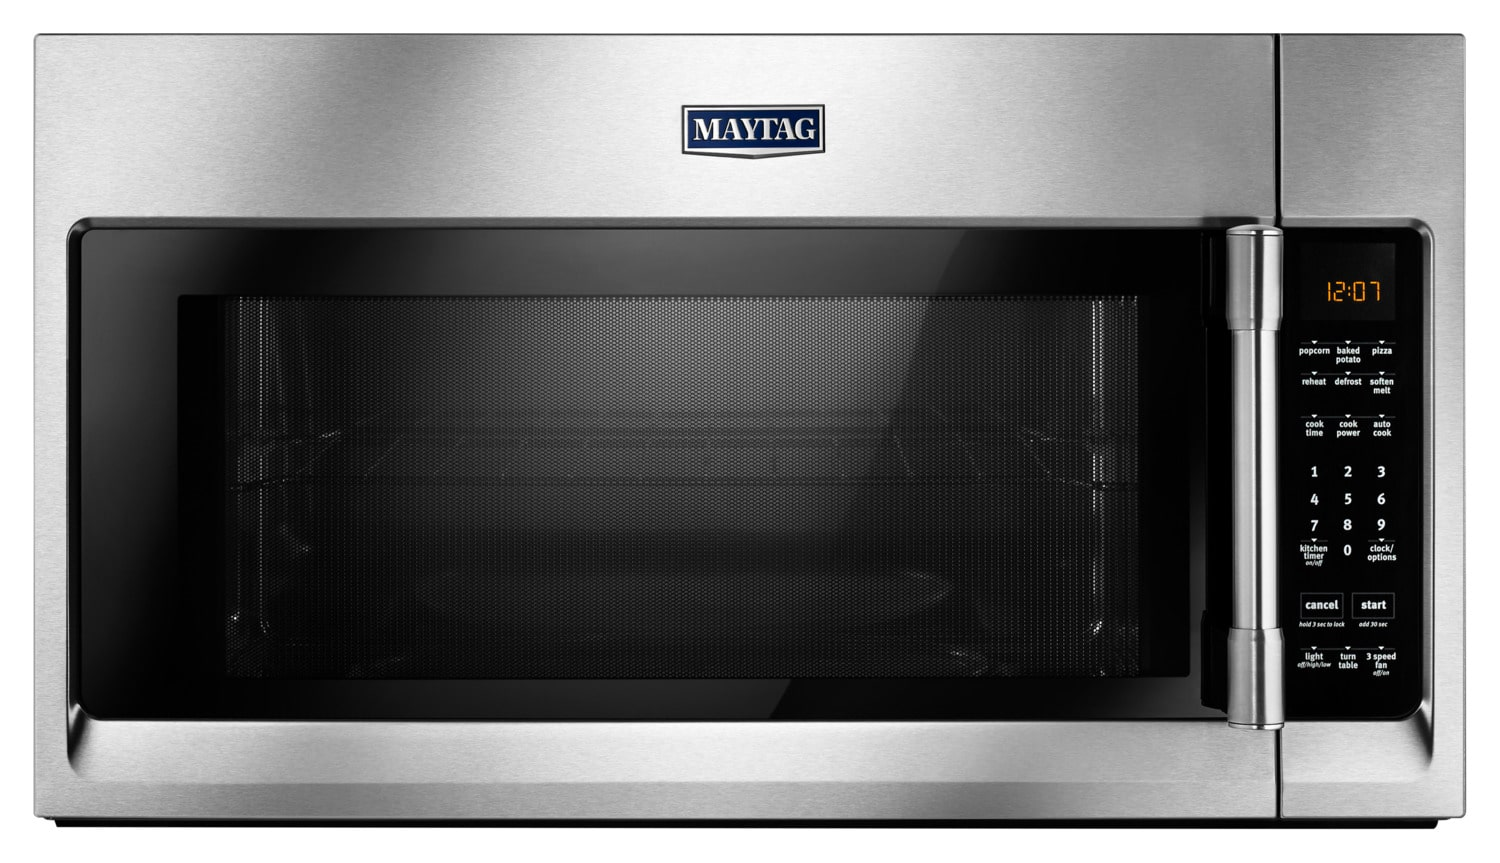 Maytag 2.0 Cu. Ft. Over-the-Range Microwave with Interior Cooking Rack – YMMV4206FZ